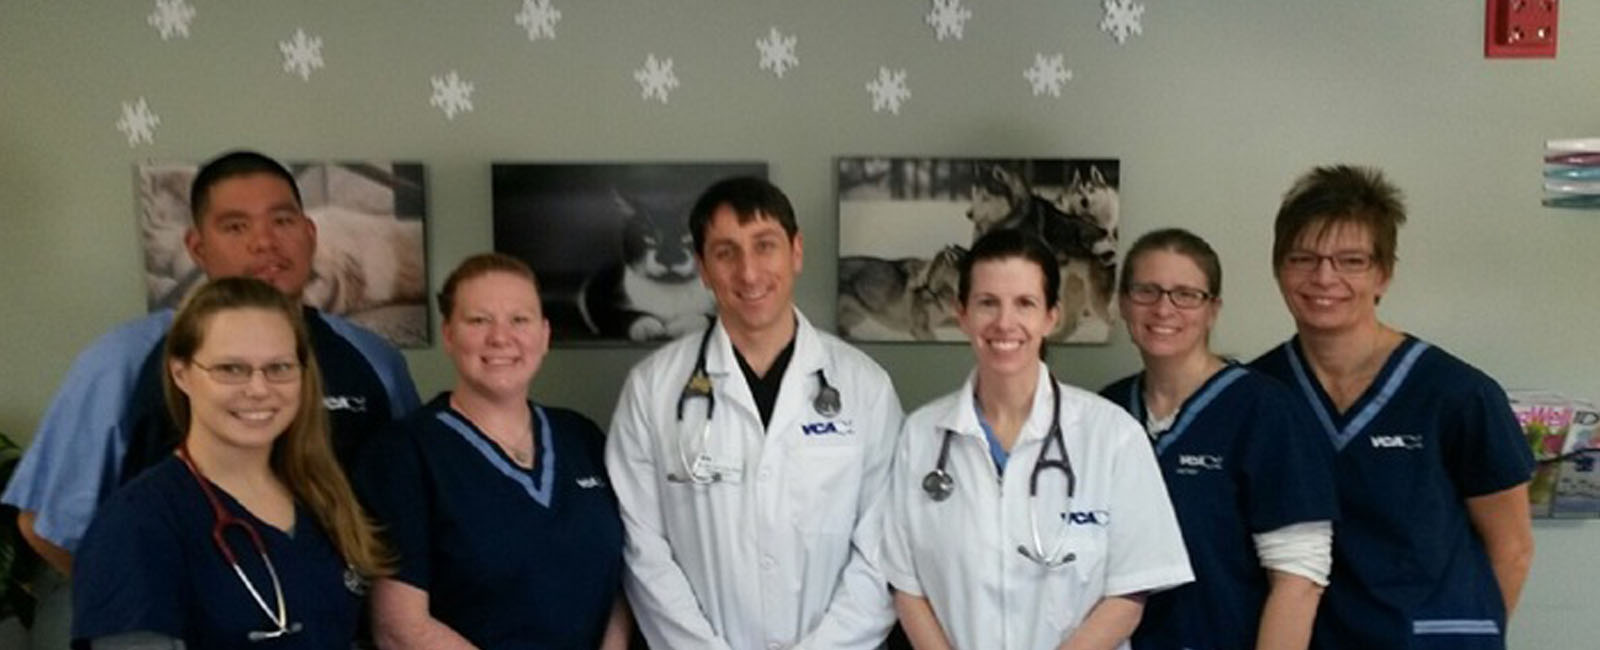 Homepage Team Picture of VCA Hawthorn Animal Hospital